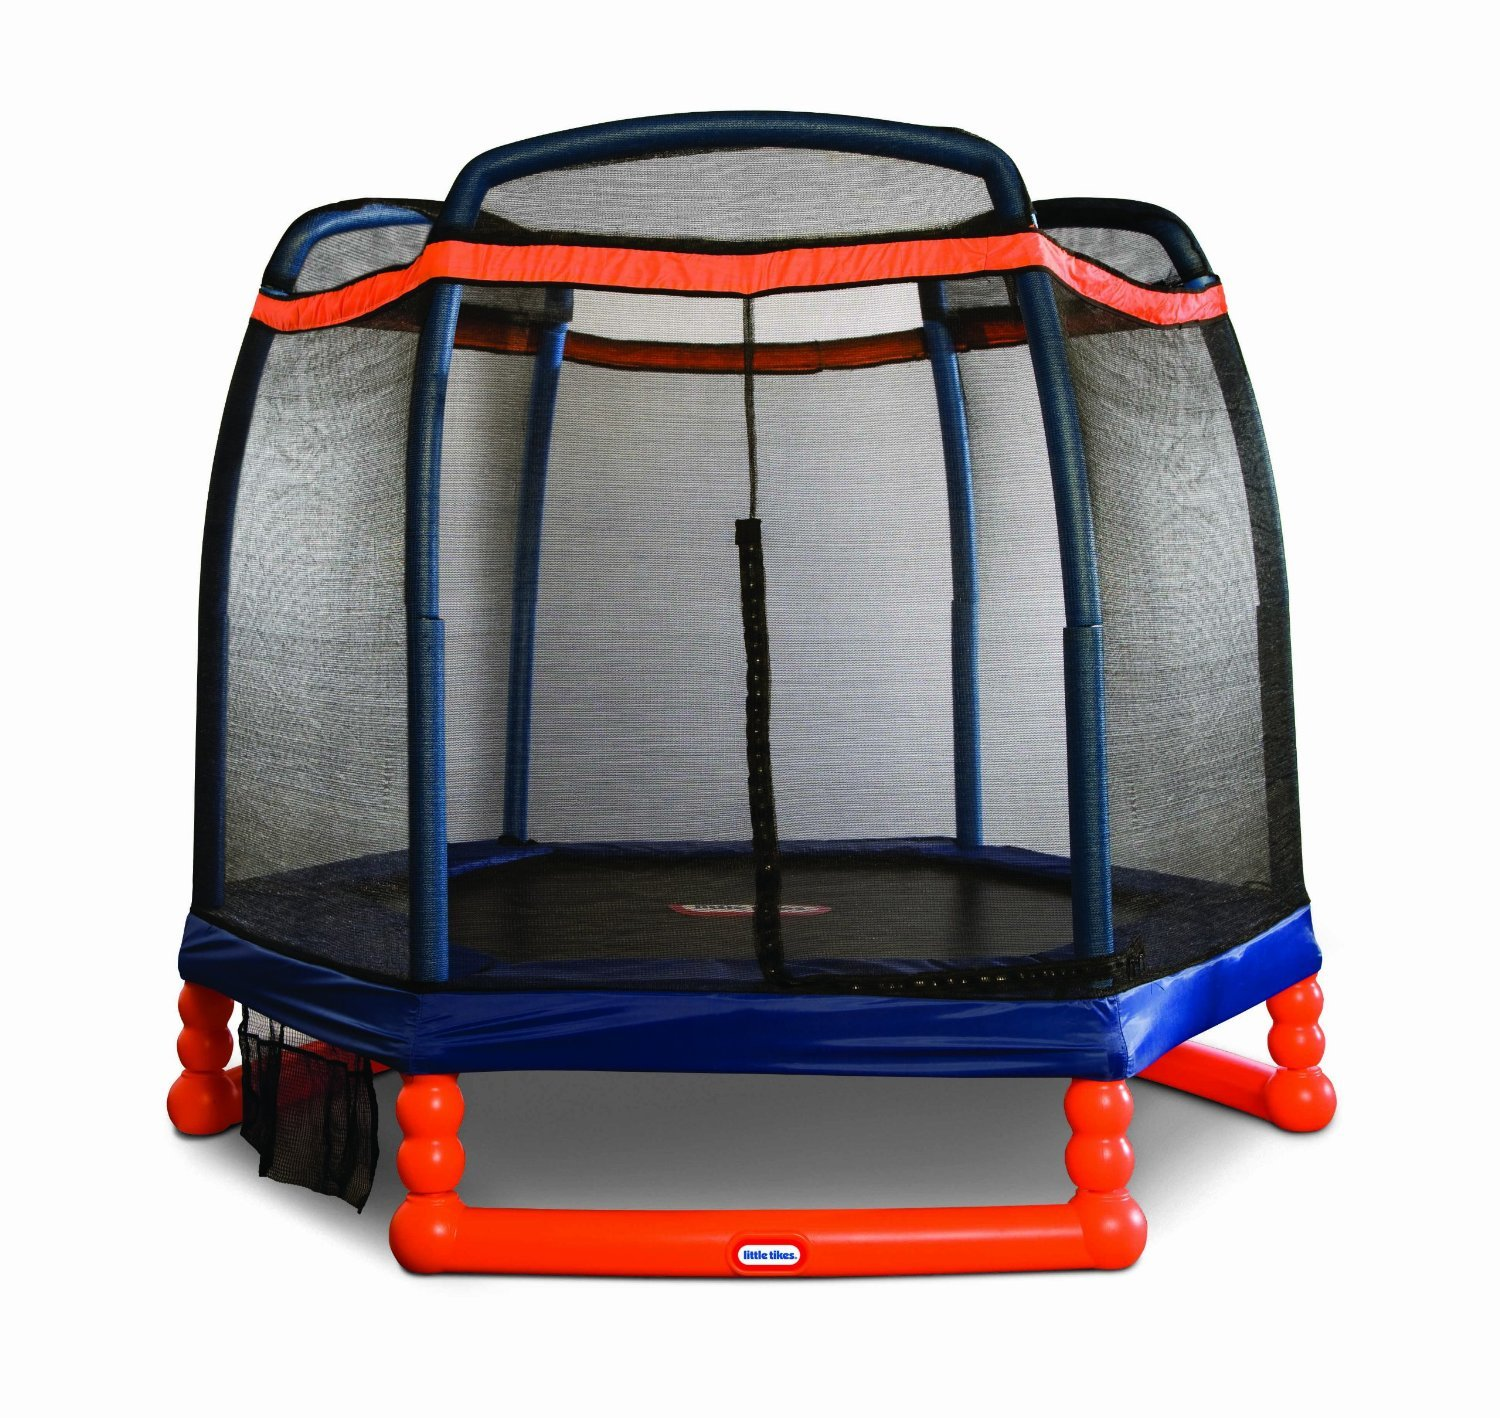 trampoline - outdoor toys - best toys for 3 year olds.jpg